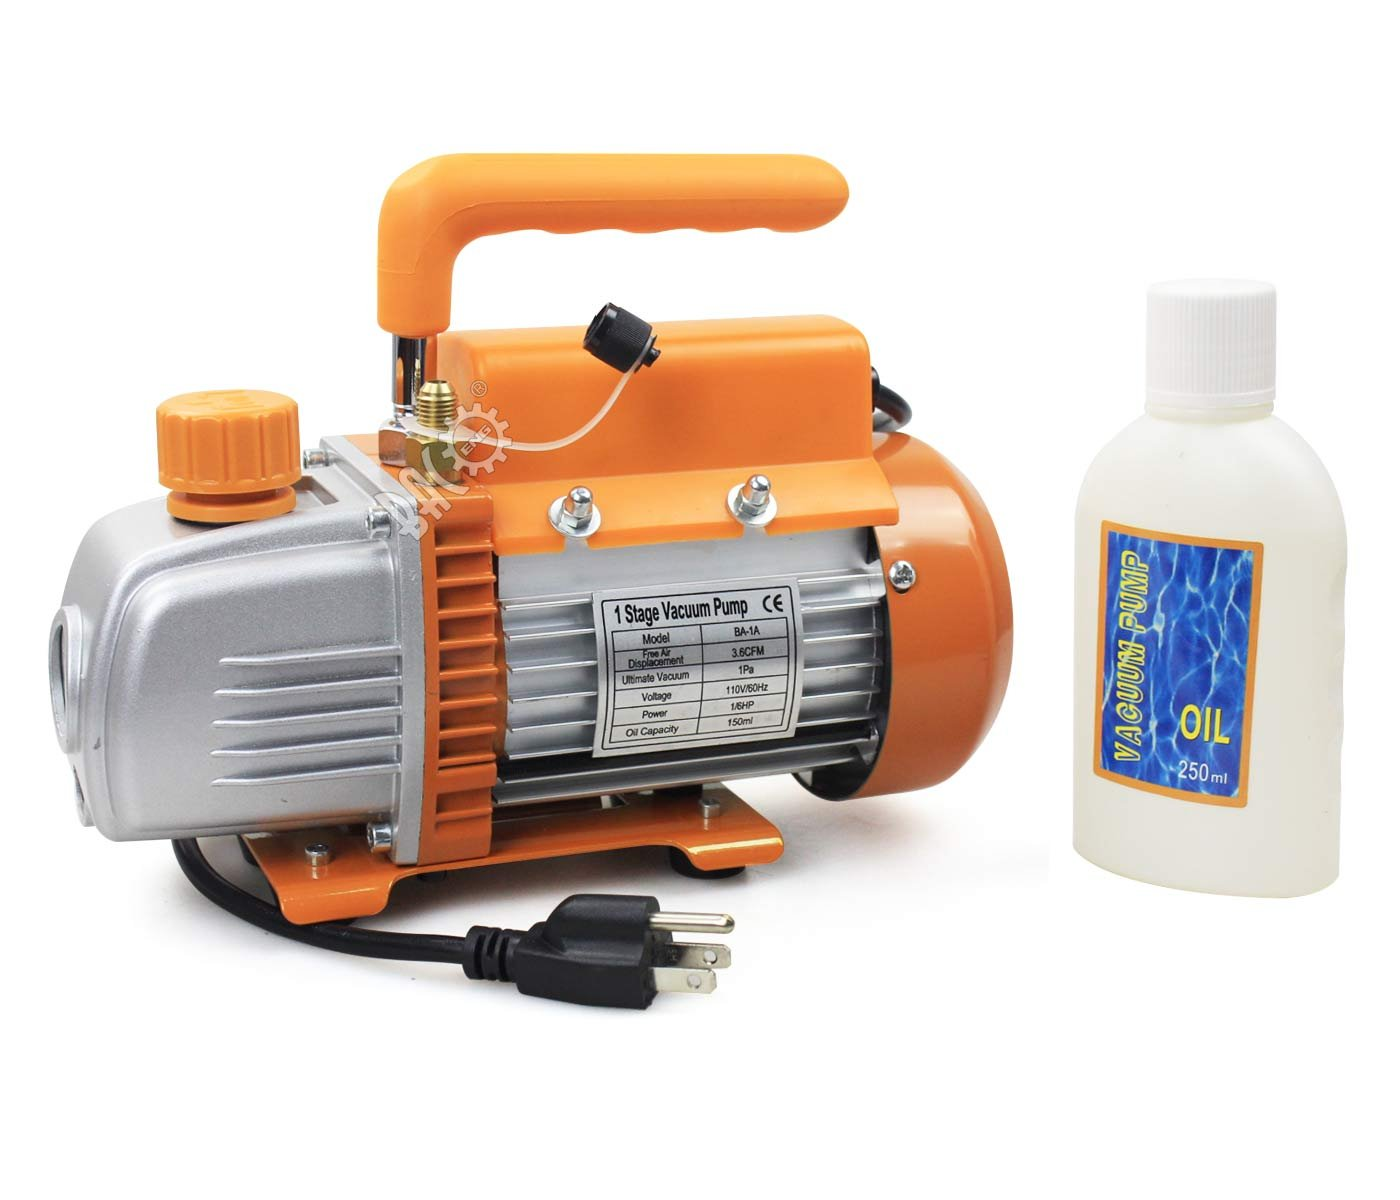 BACOENG Vacuum Pump Standard: 3.6 CFM Single Stage HVAC (Mini/Standard/Advanced/Premium Available) by BACOENG